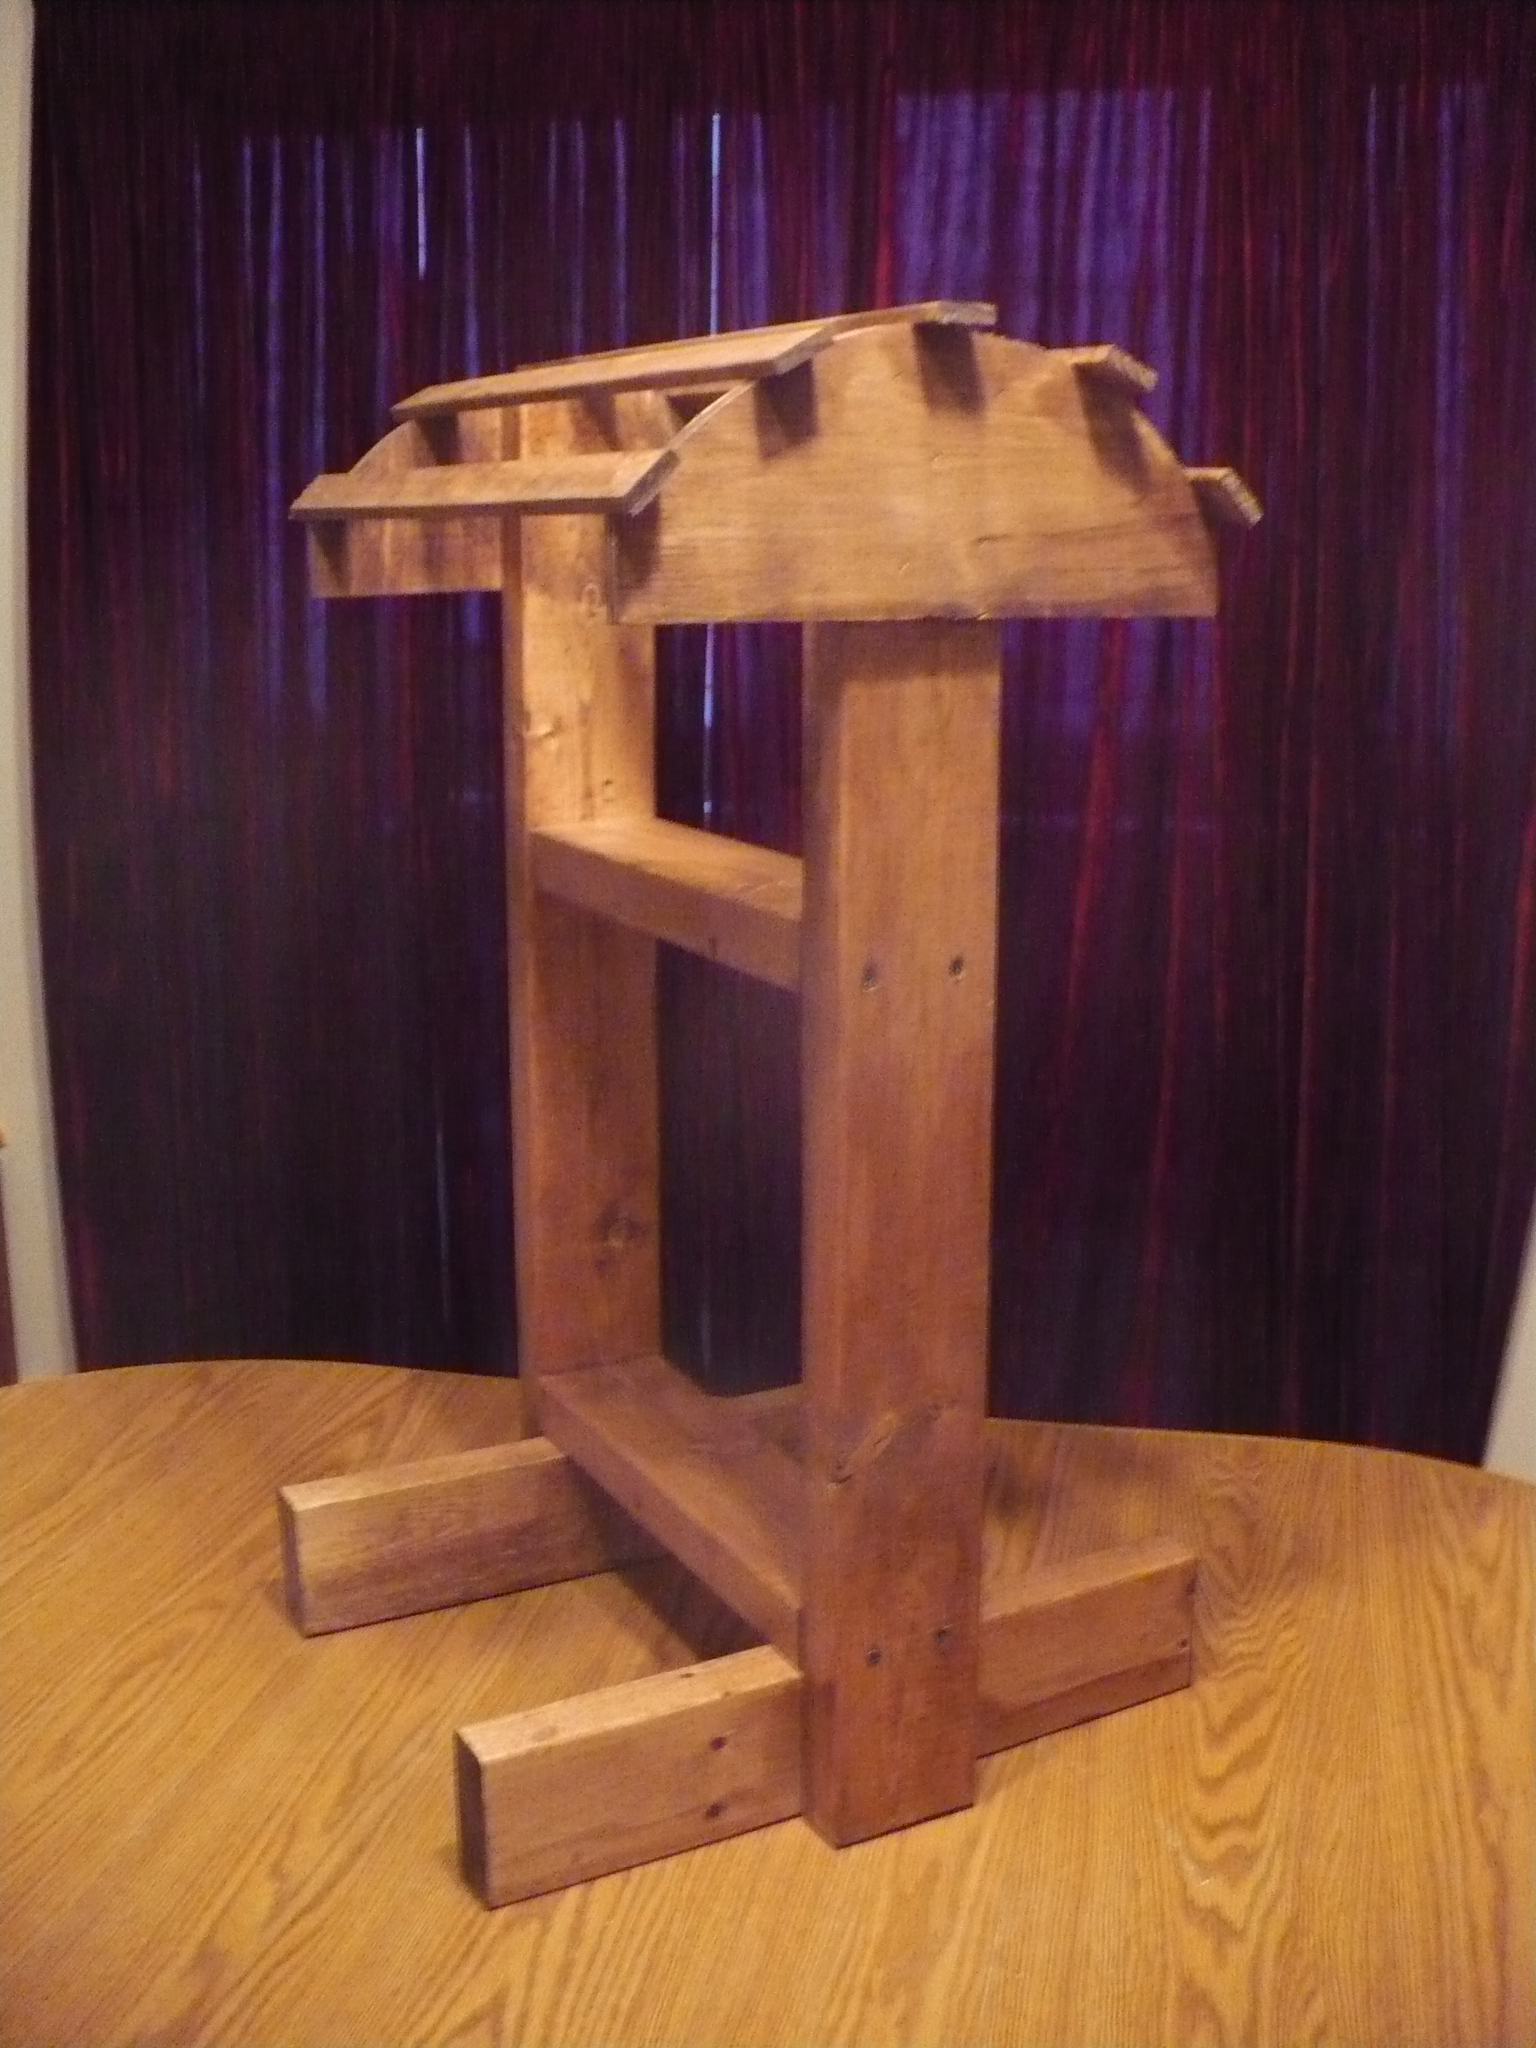 FOR SALE: Handmade Wooden Saddle Stands